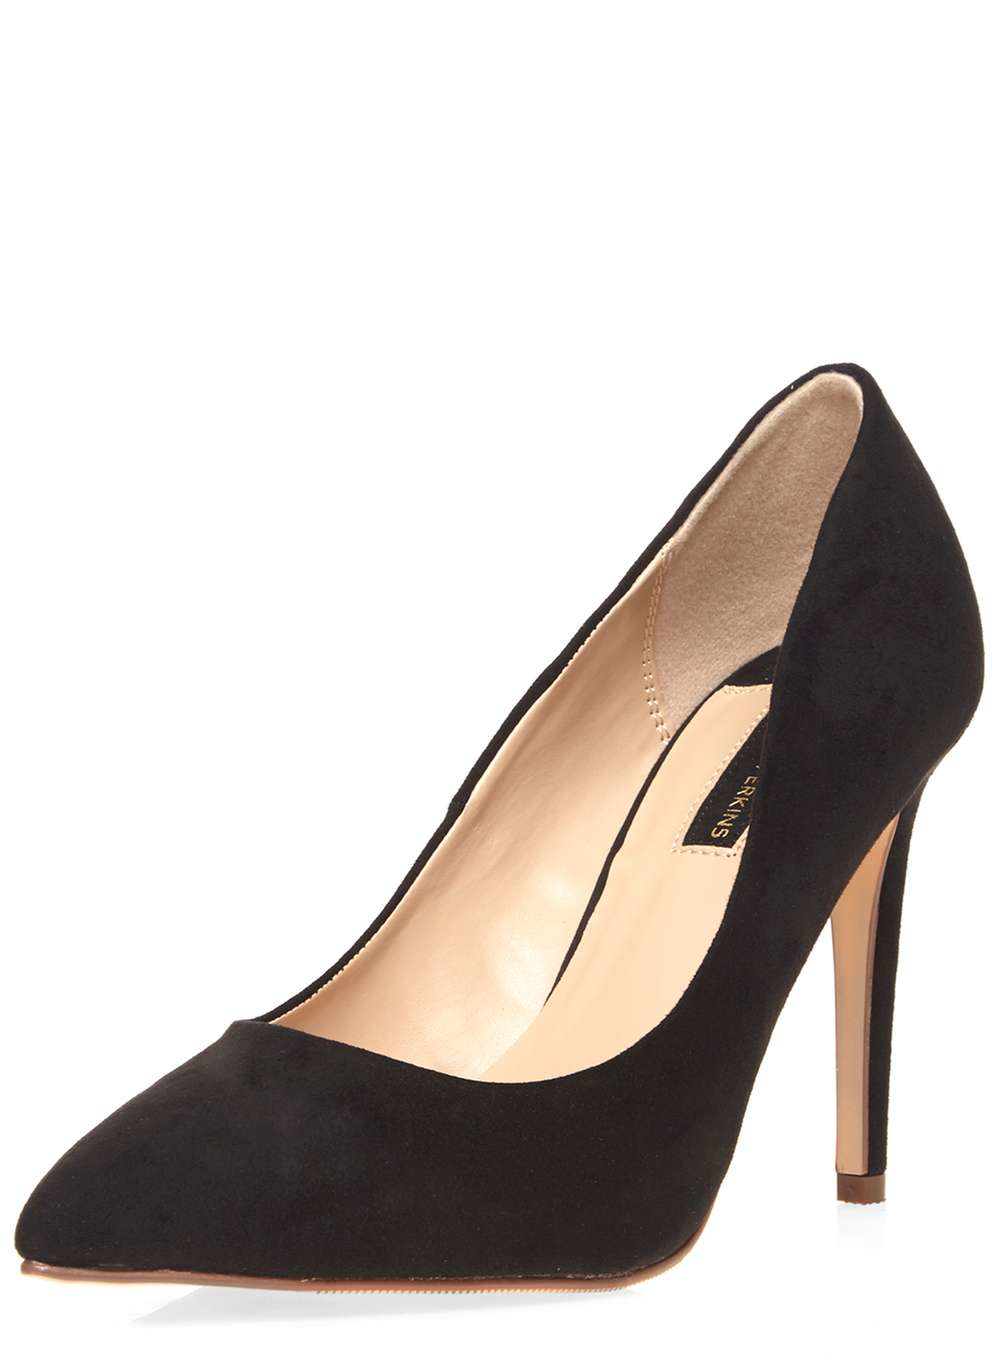 dorothy perkins black emily high court shoes in black